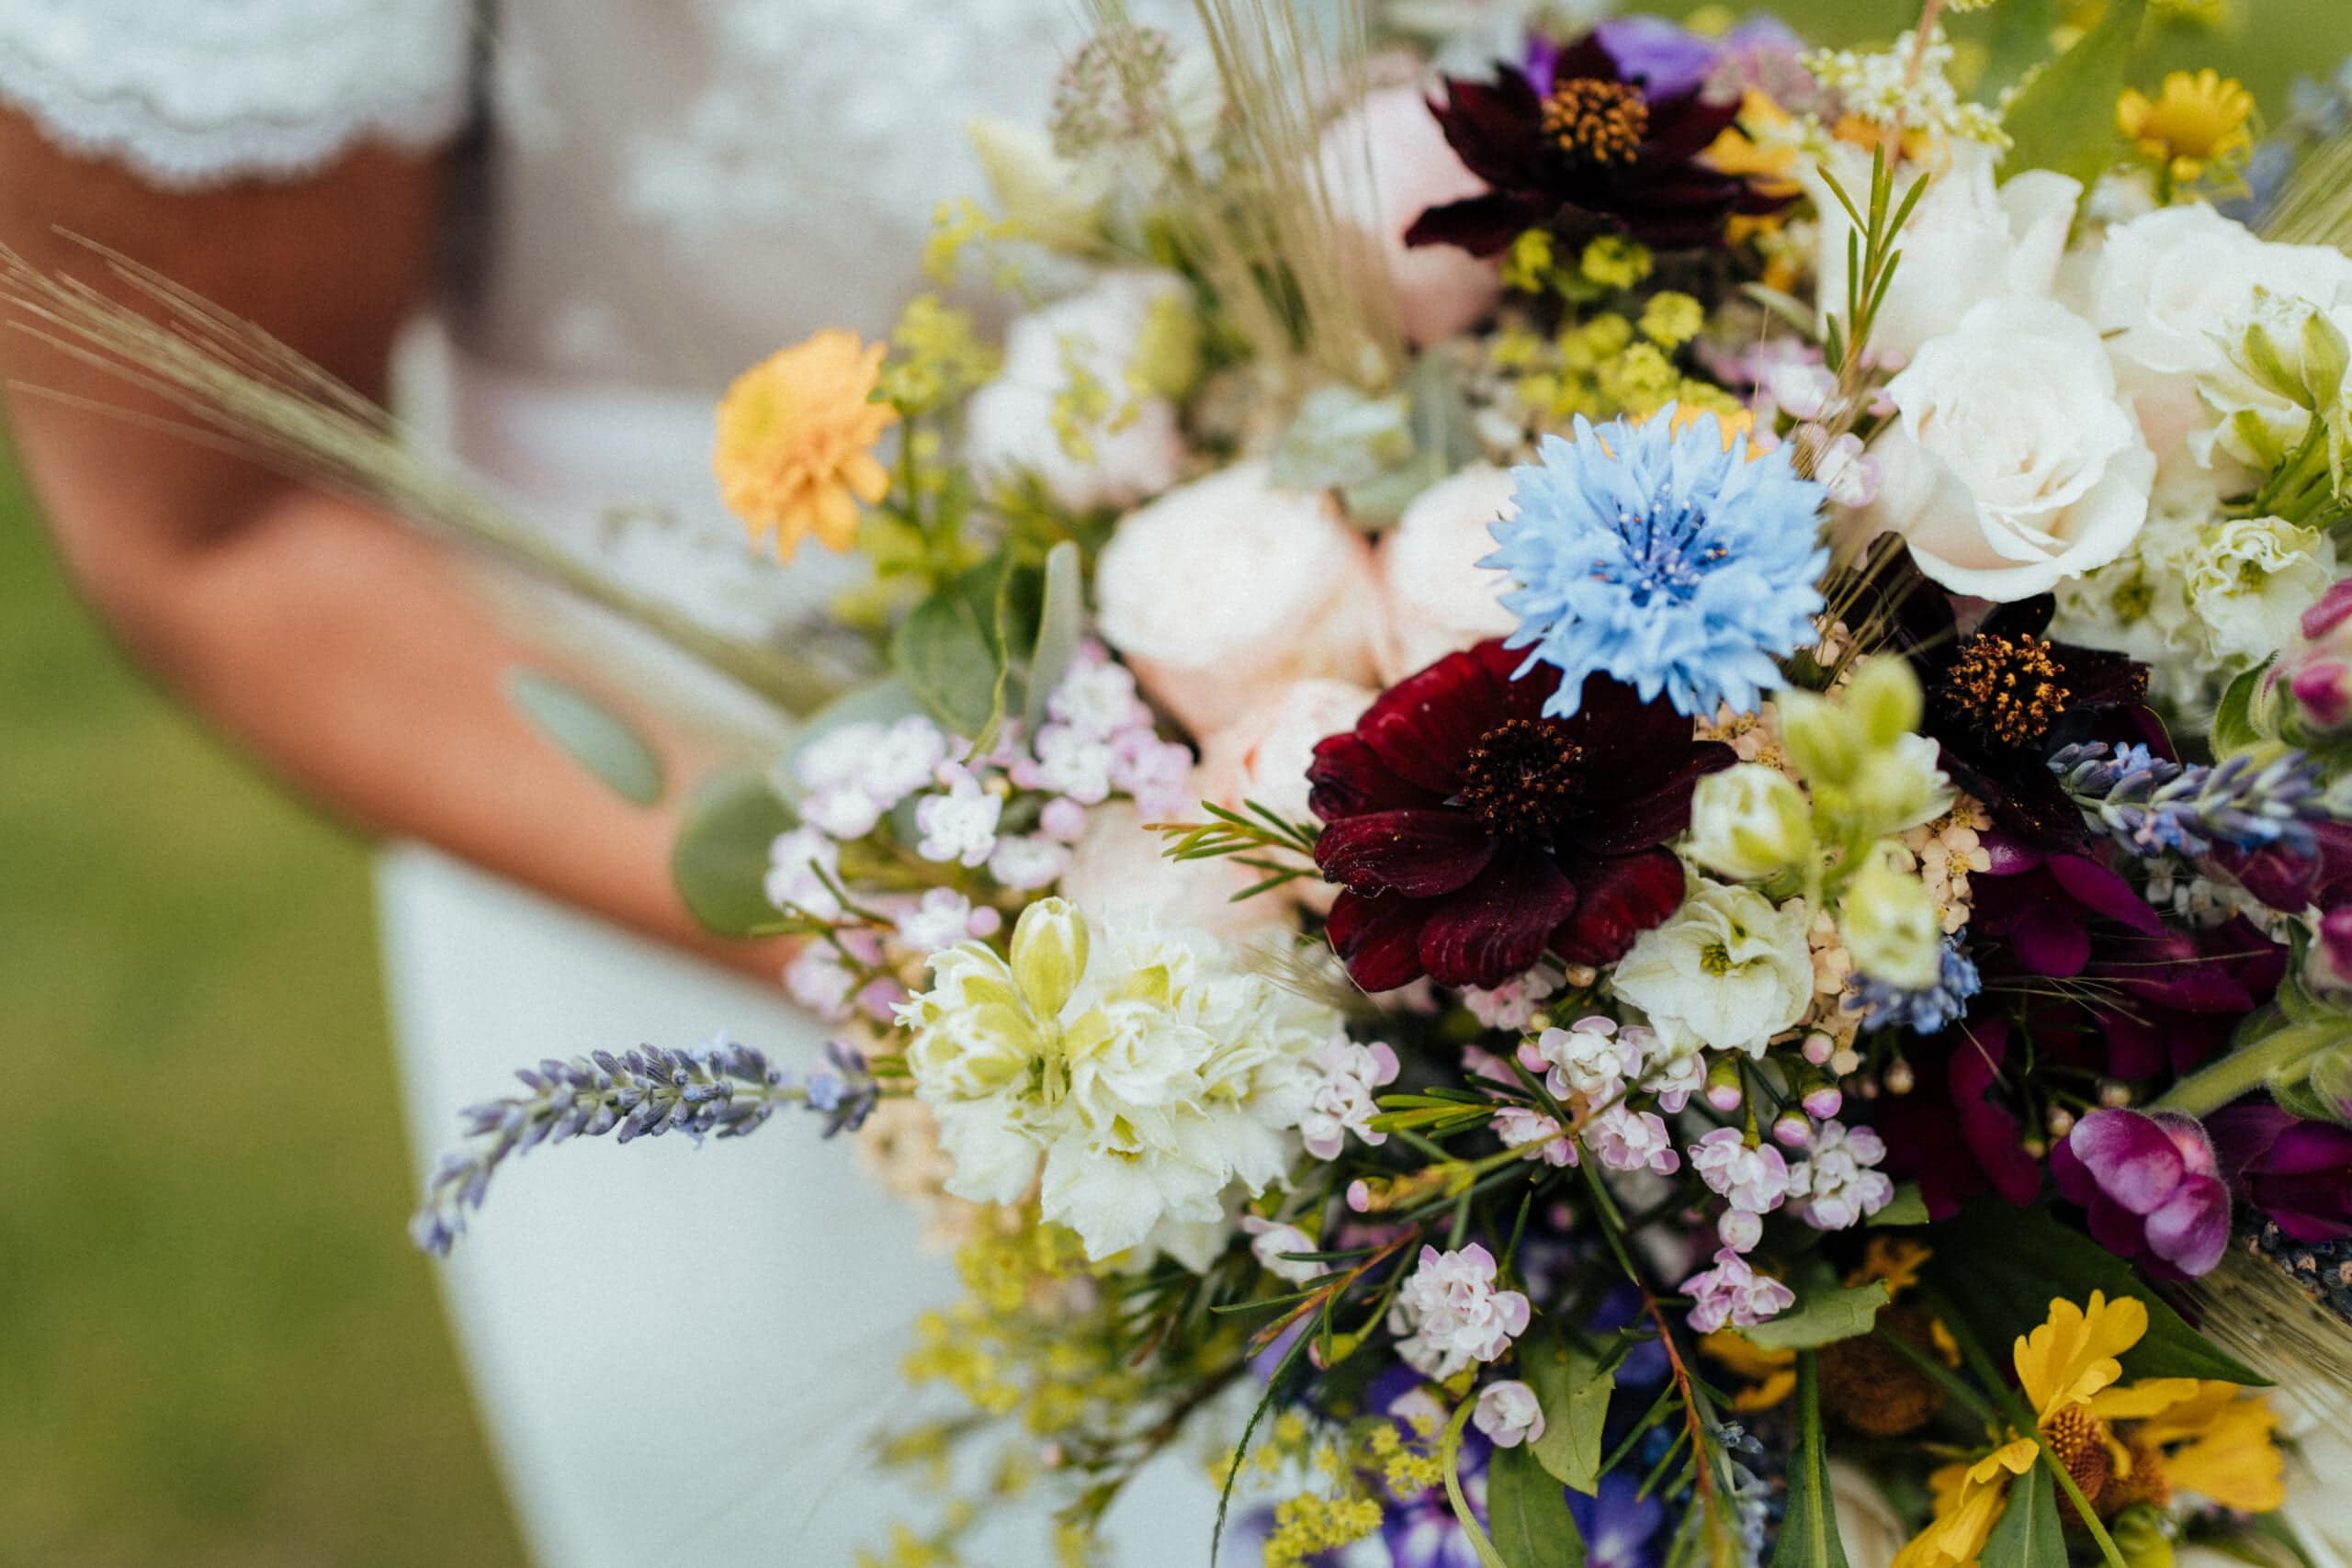 Wilddlower bouquet with bright colours at Chaucer Barn Wedding Venue in Norfolk